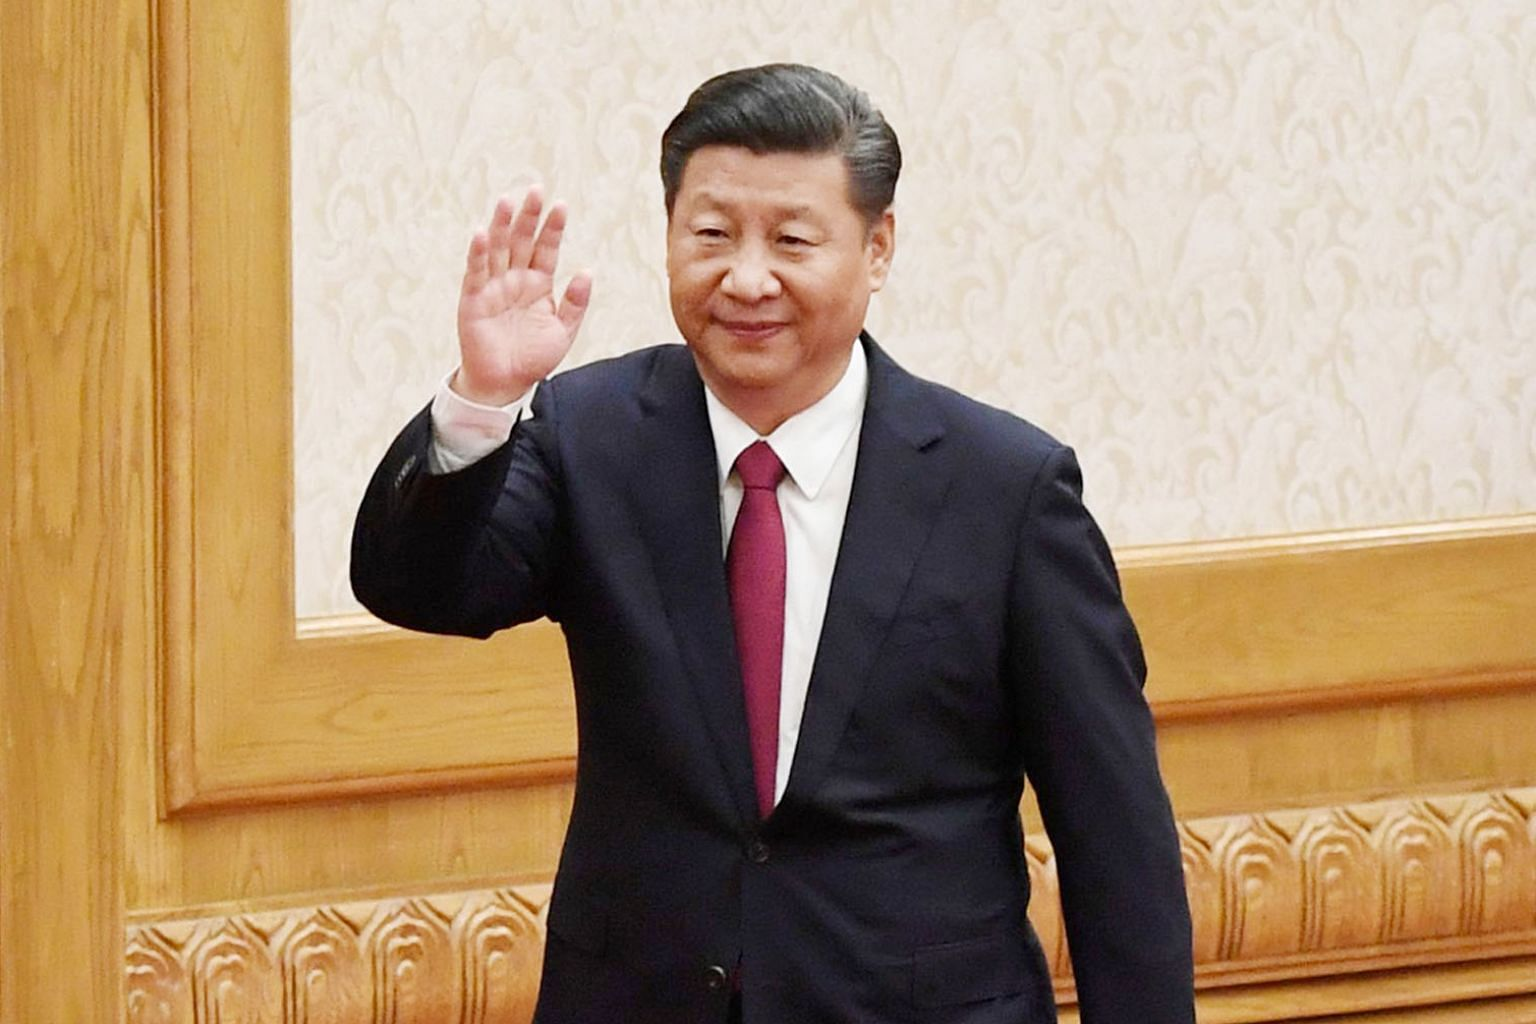 President Xi Jinping knew the only way to re-establish the CCP's credibility was by cleaning up the party's behaviour.